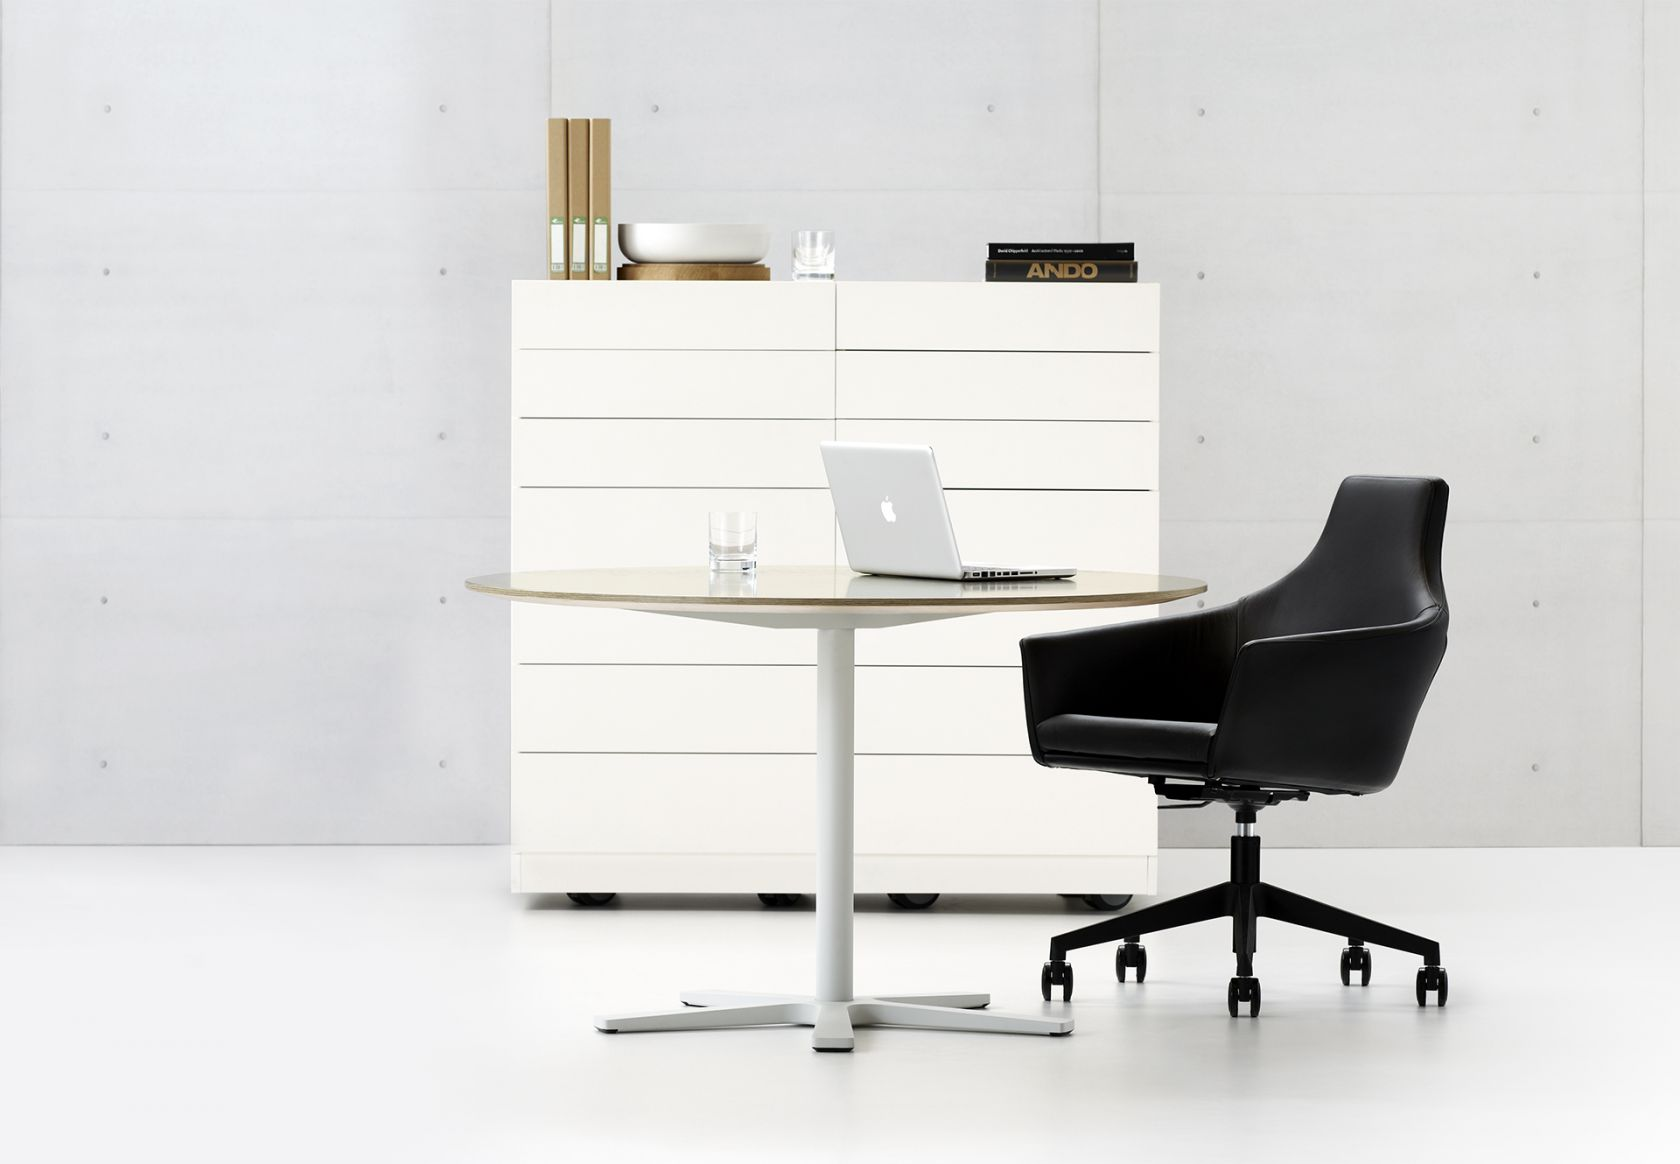 Krossi Table and Palomino Chair